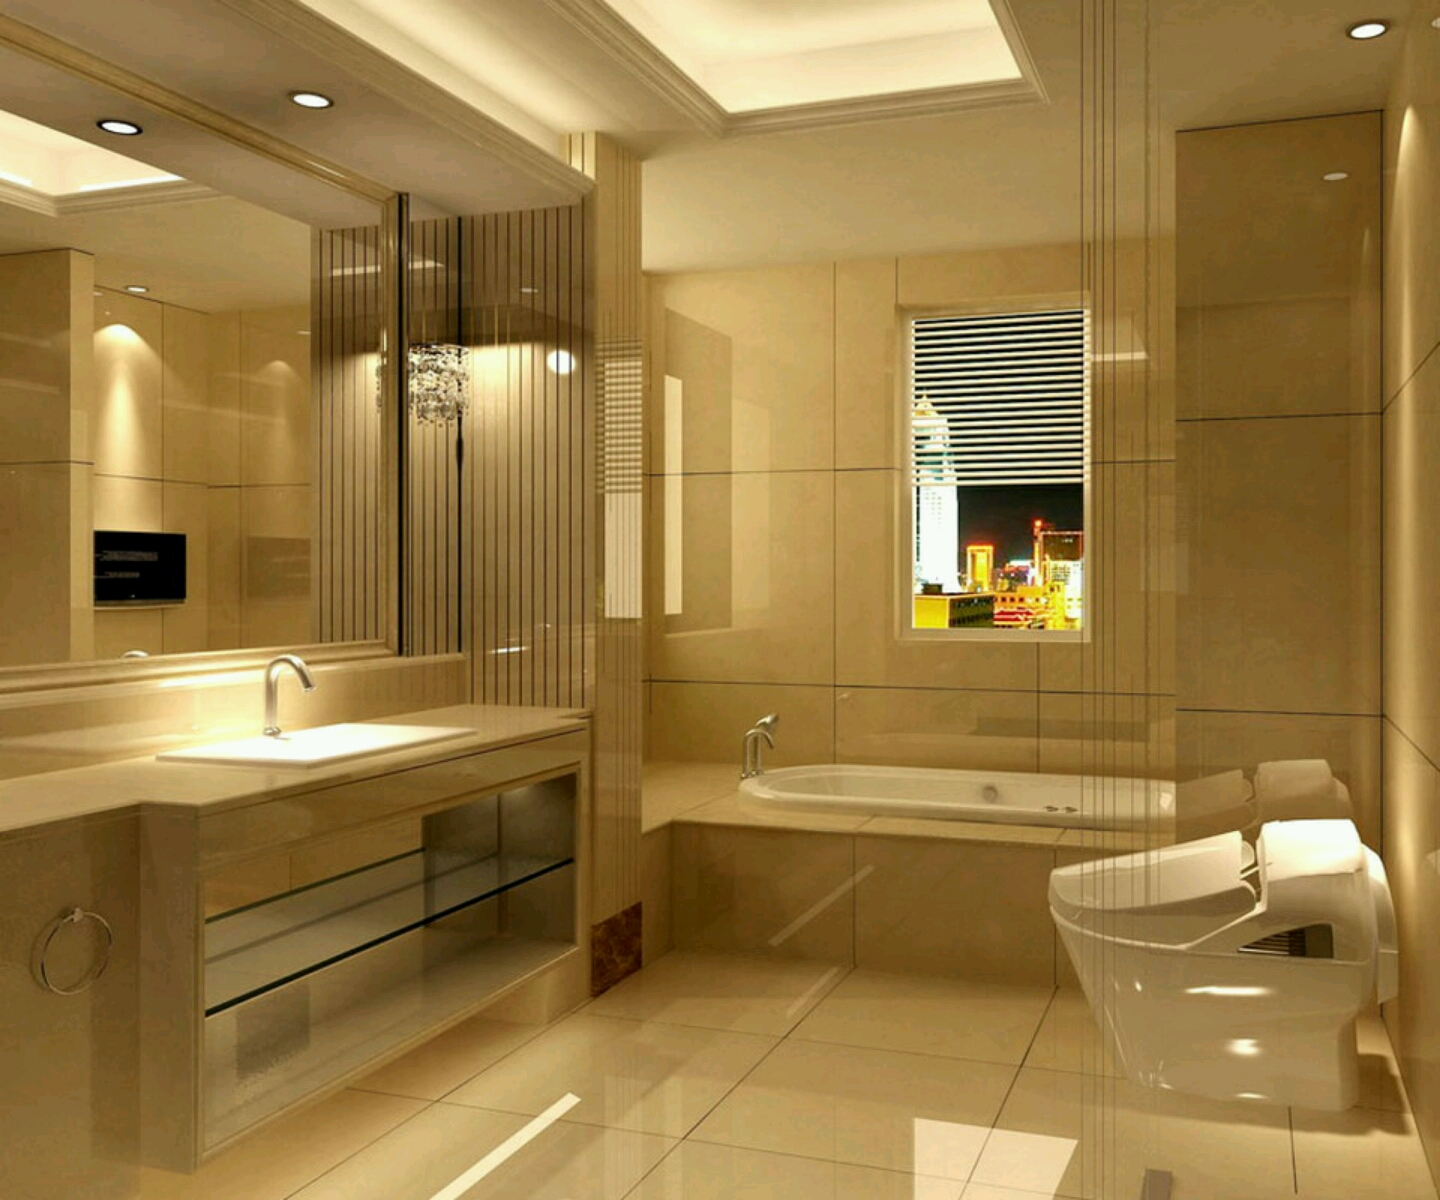 Modern bathrooms setting ideas furniture gallery for Bathroom design ideas